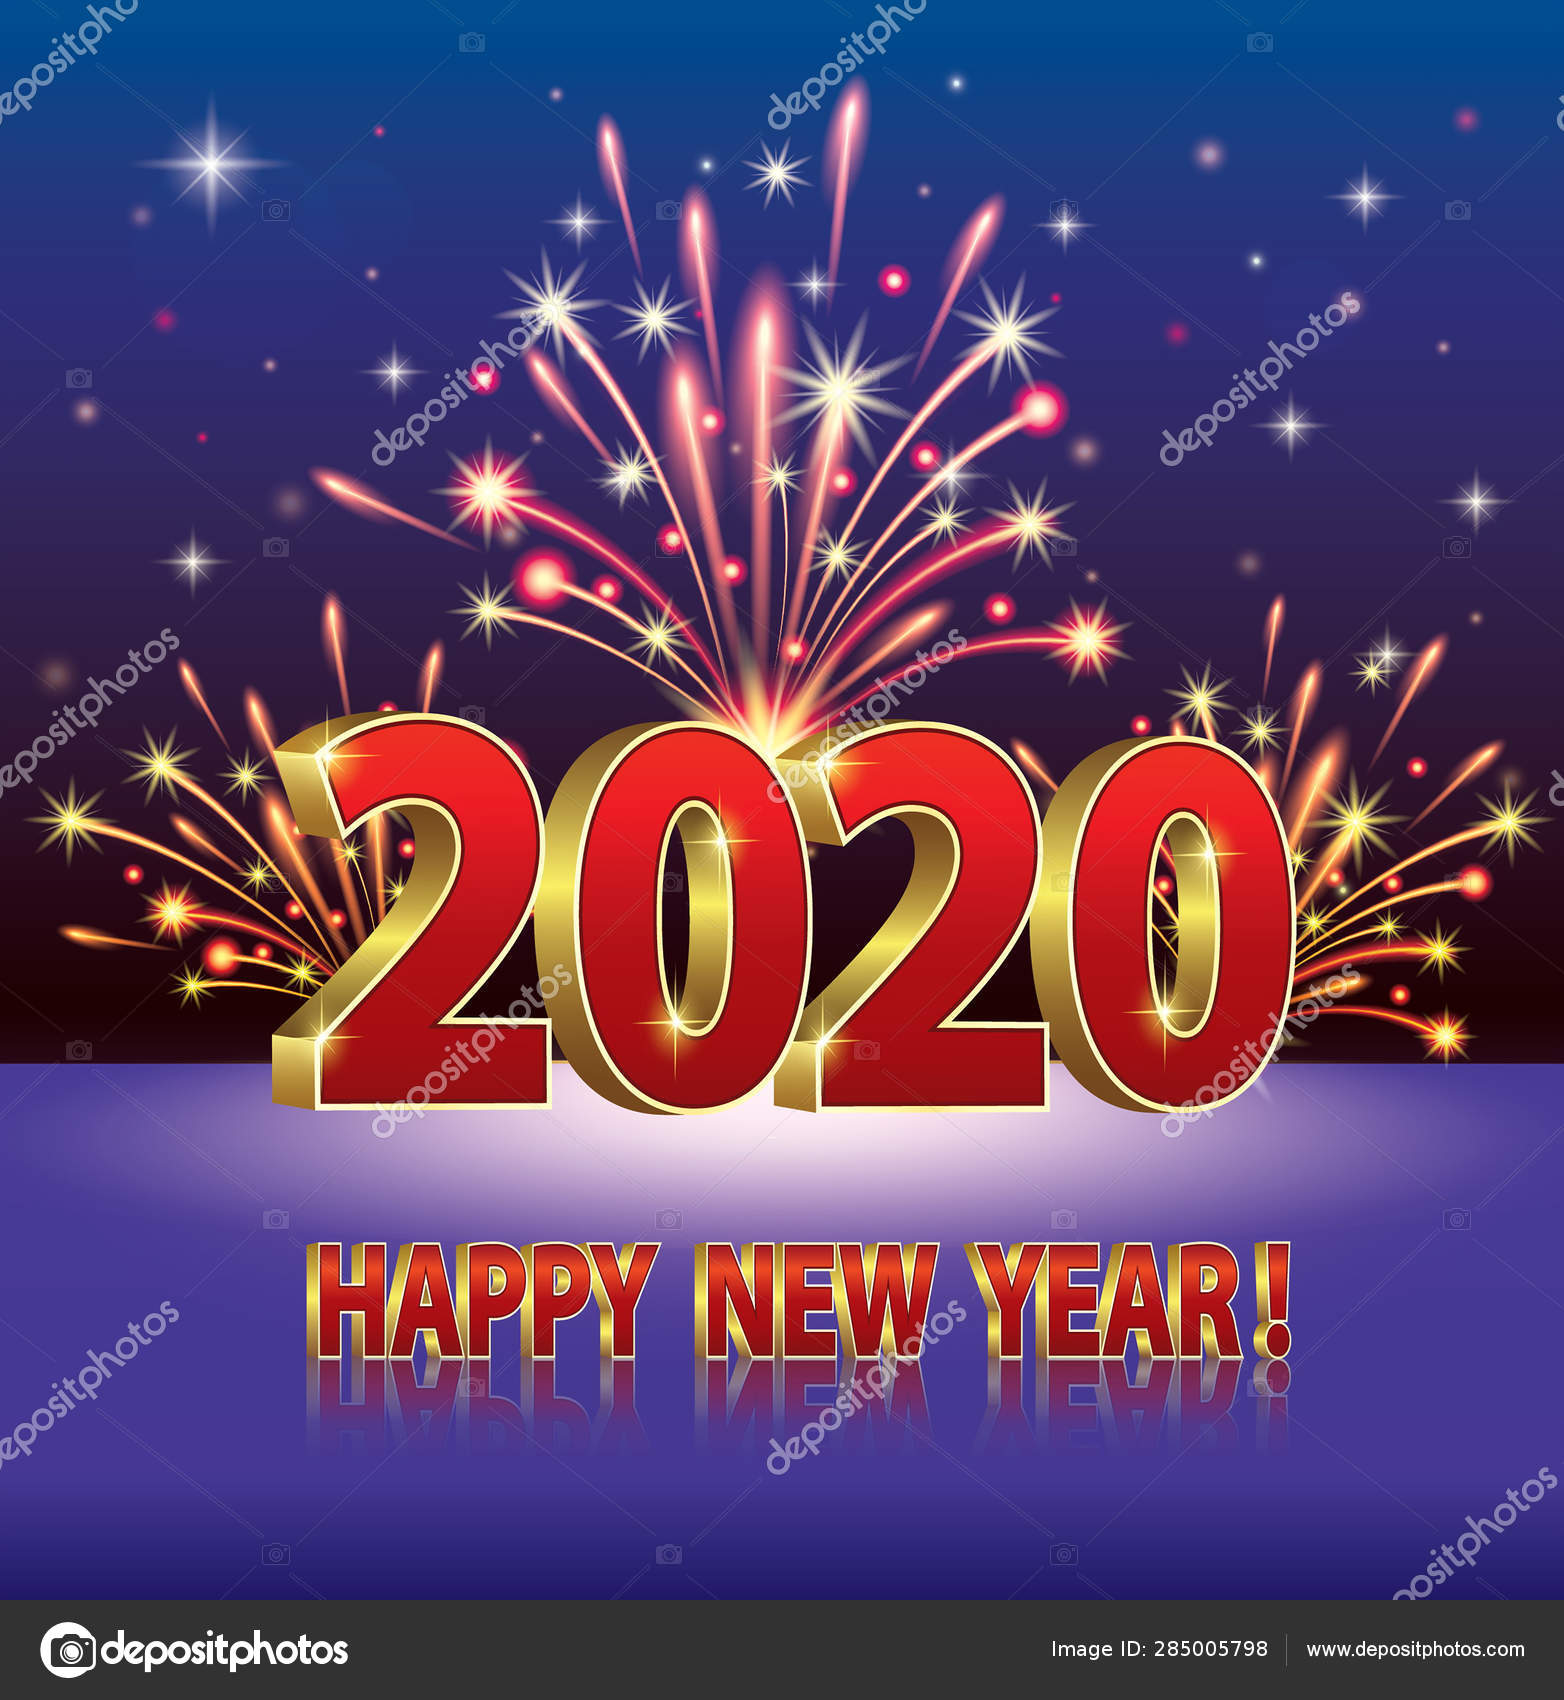 Happy New Year 2020 Funny.Happy New Year 2020 Greeting Card Date Background Fireworks